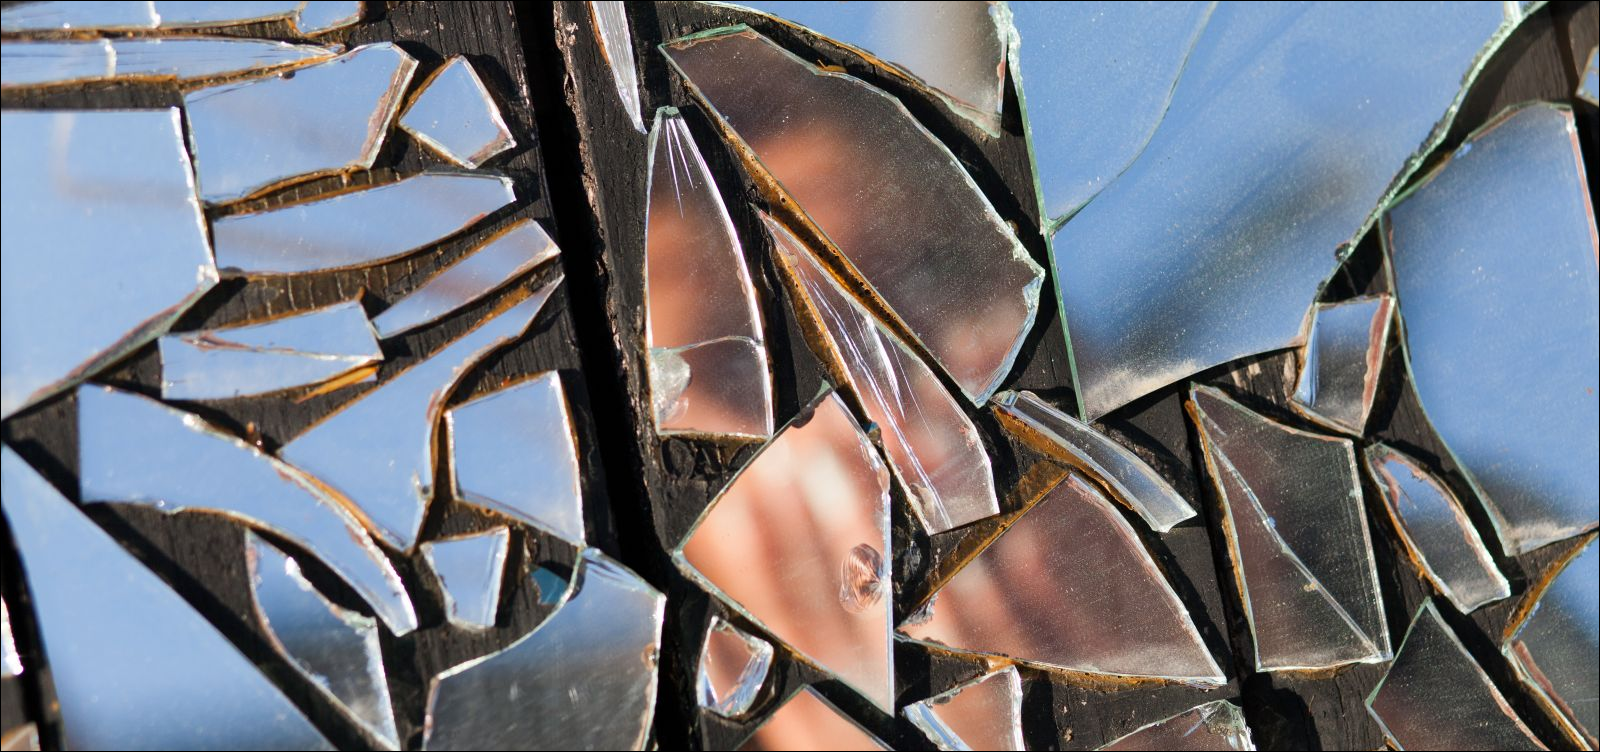 obscured image of a woman in broken mirror reflection